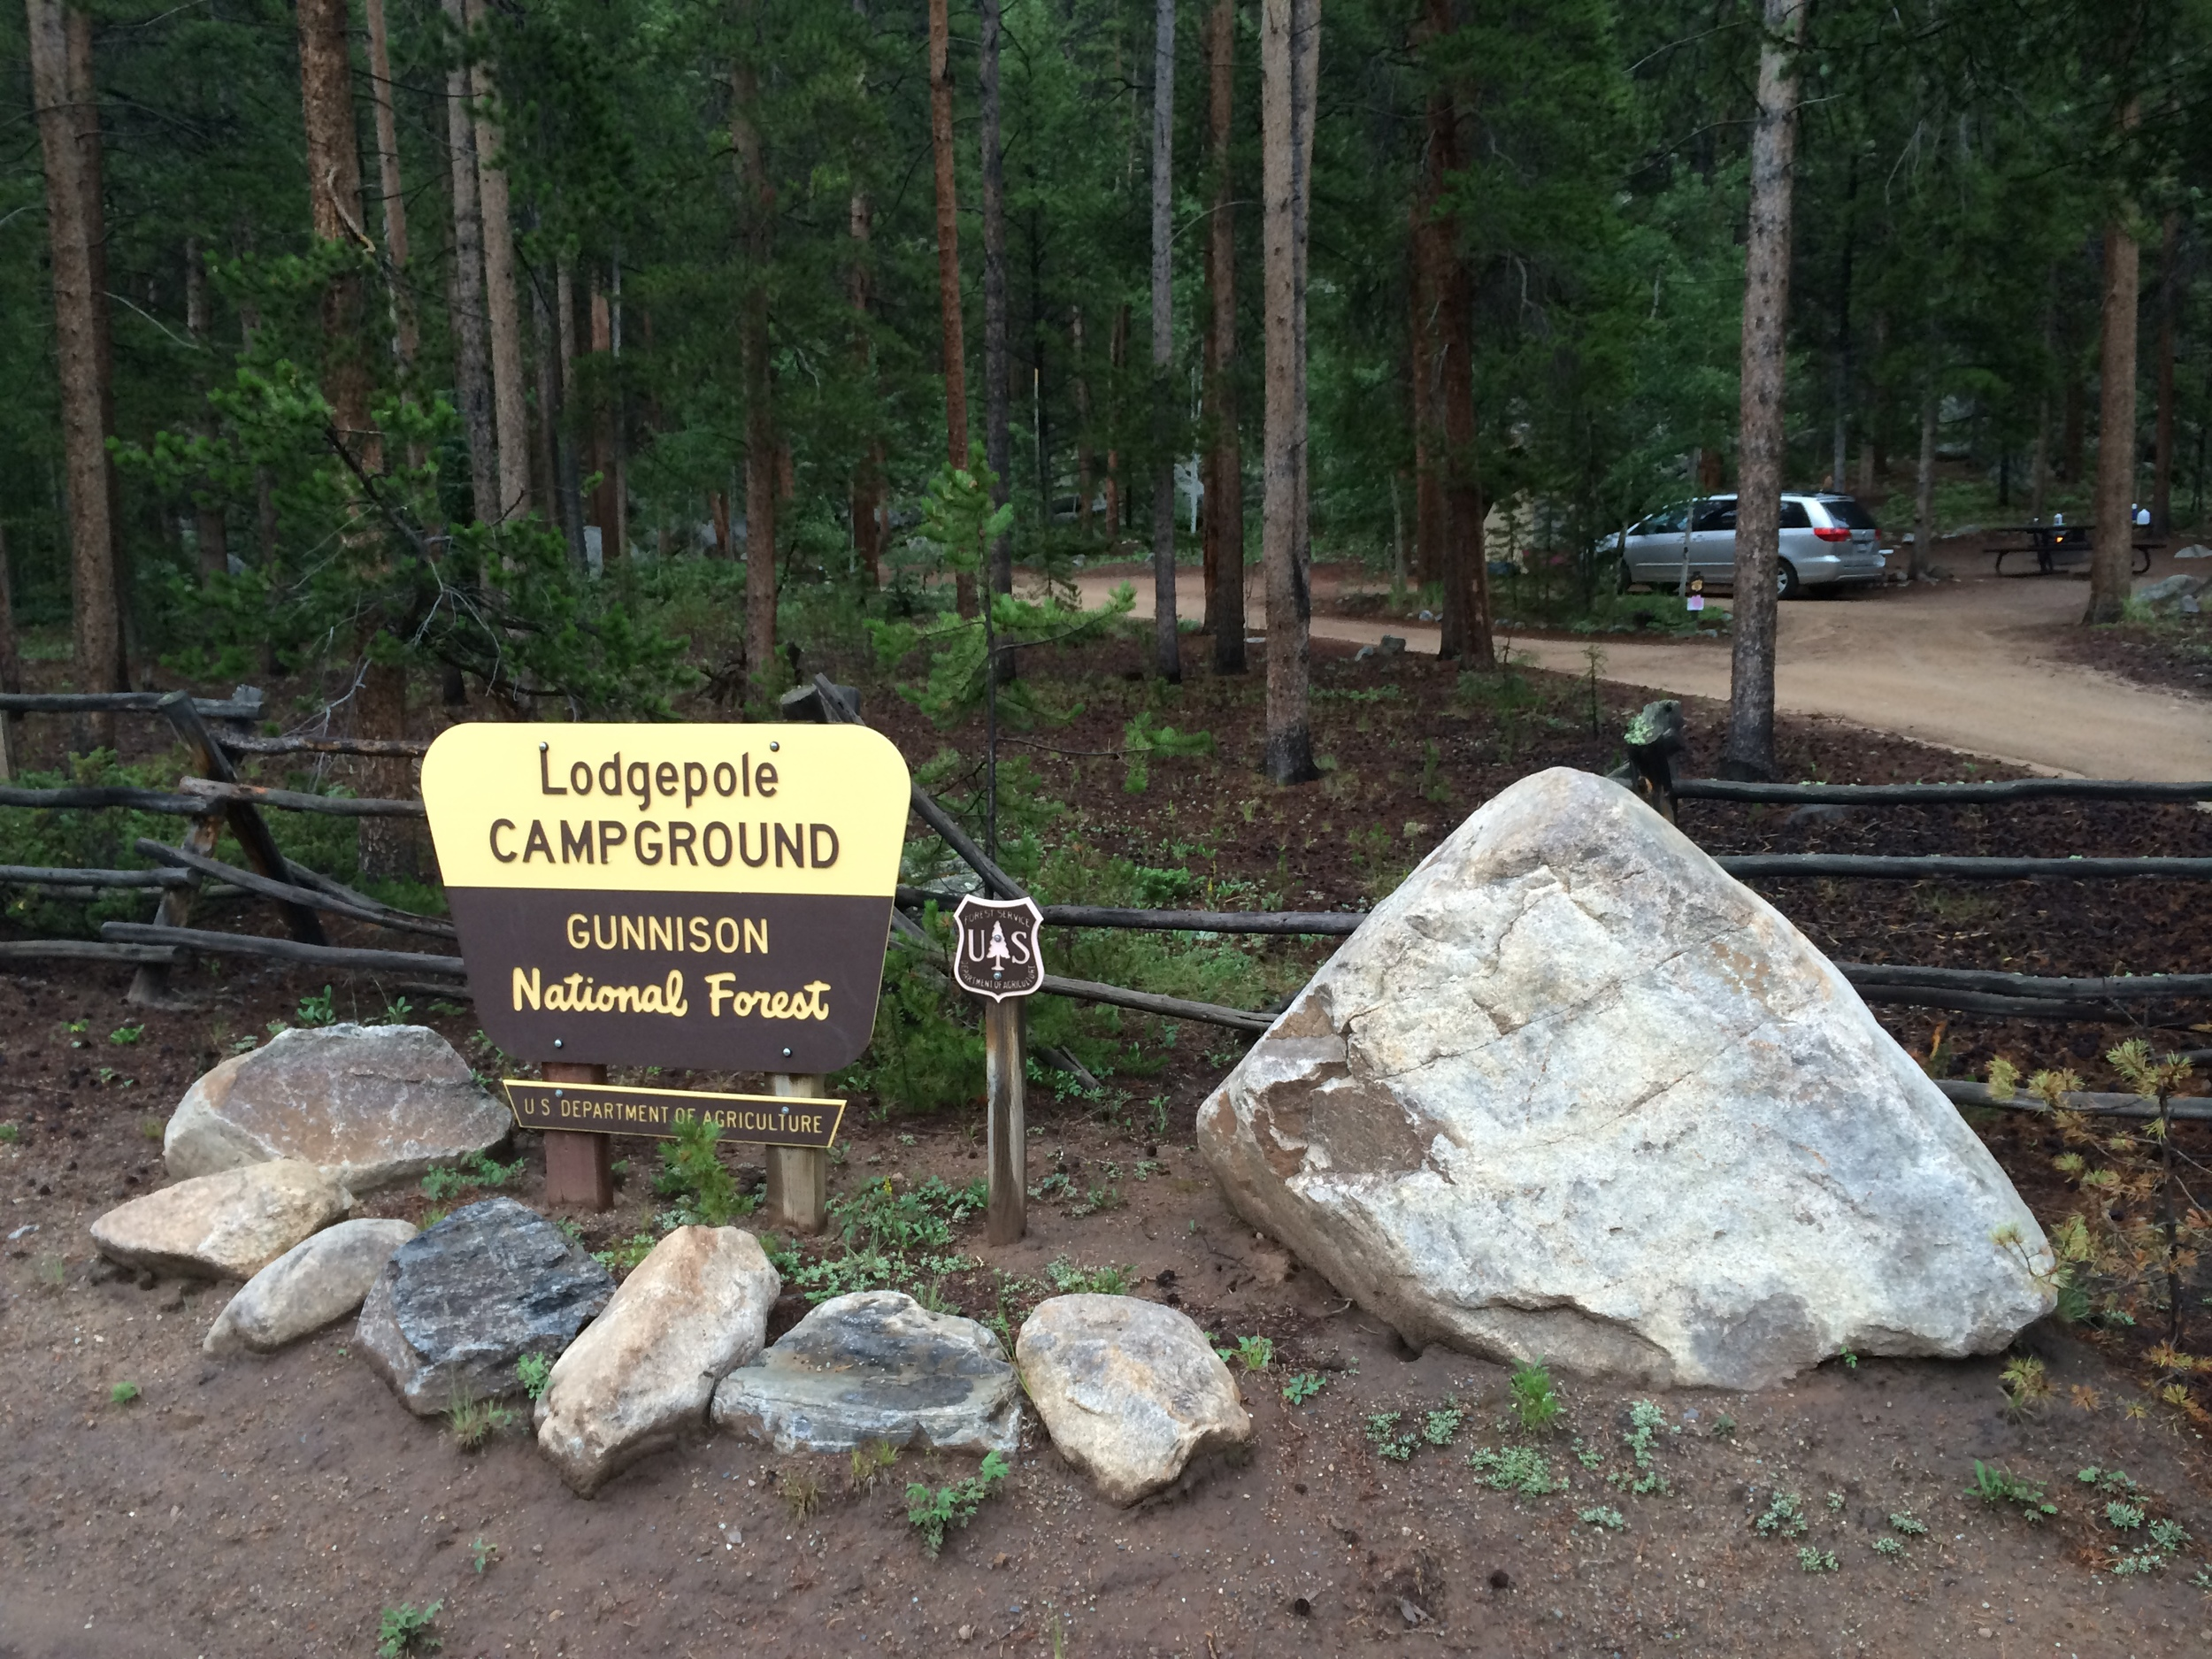 Lodgepole - Middle Entrance (Site #10 in background)